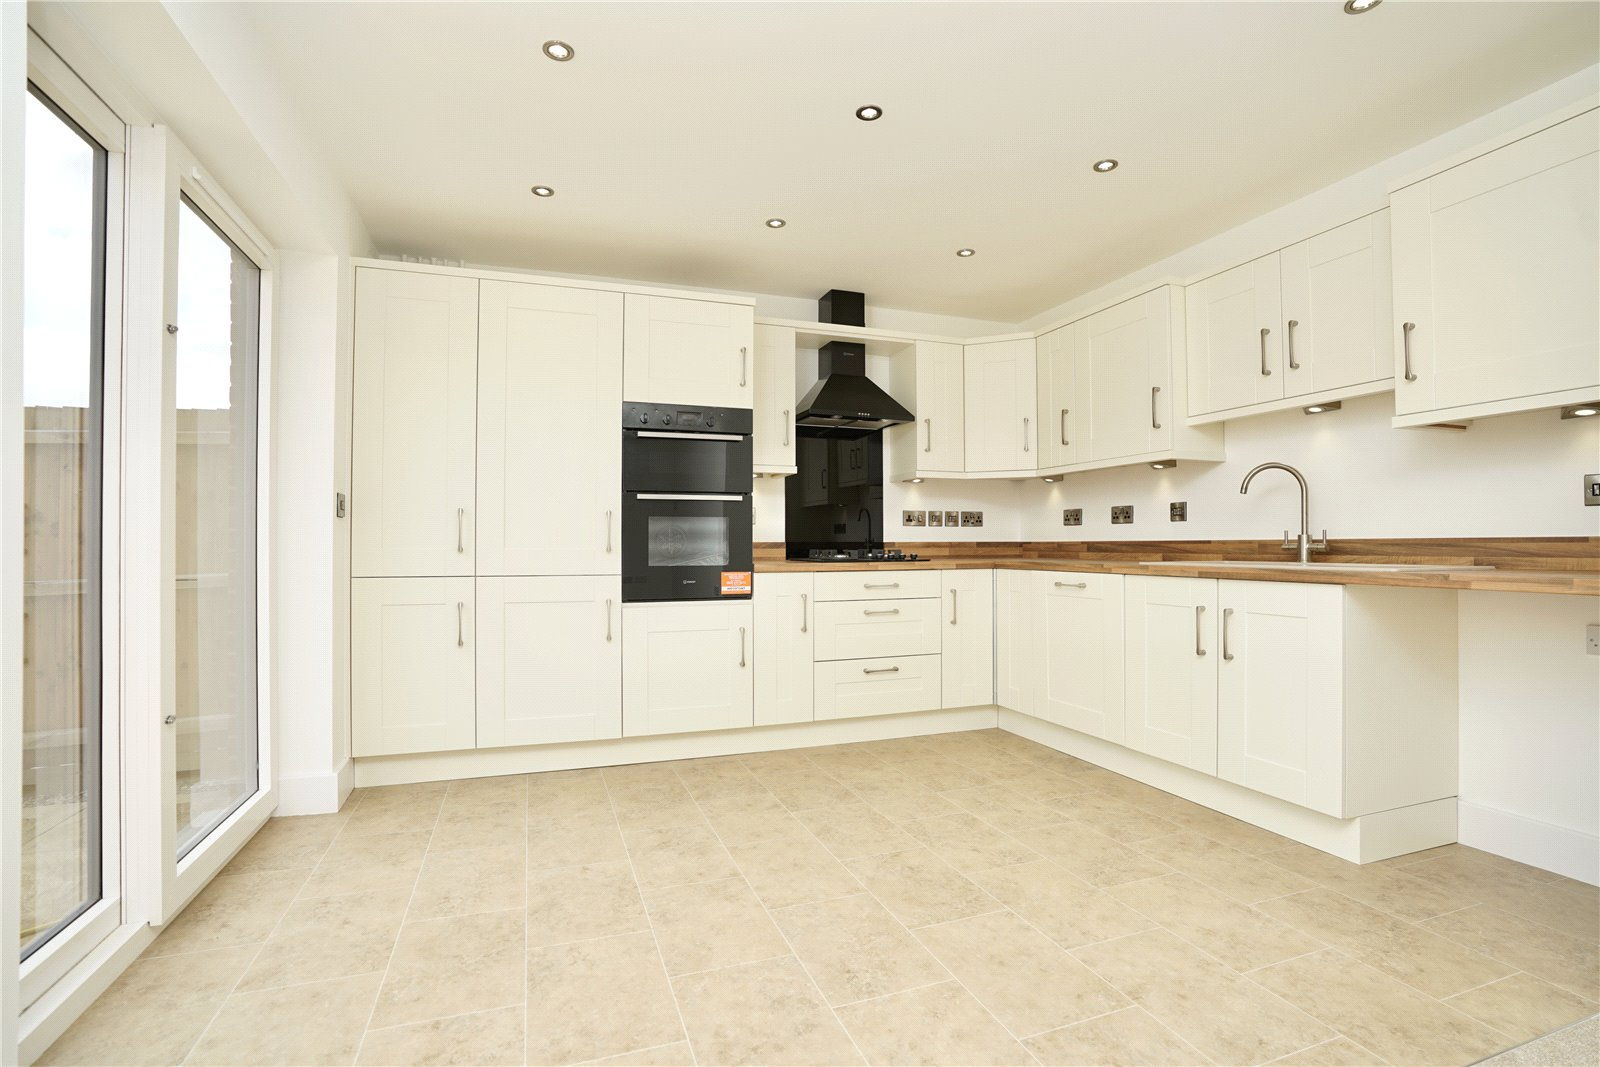 3 bed bungalow for sale in Whittlesey, PE7 1RU 1